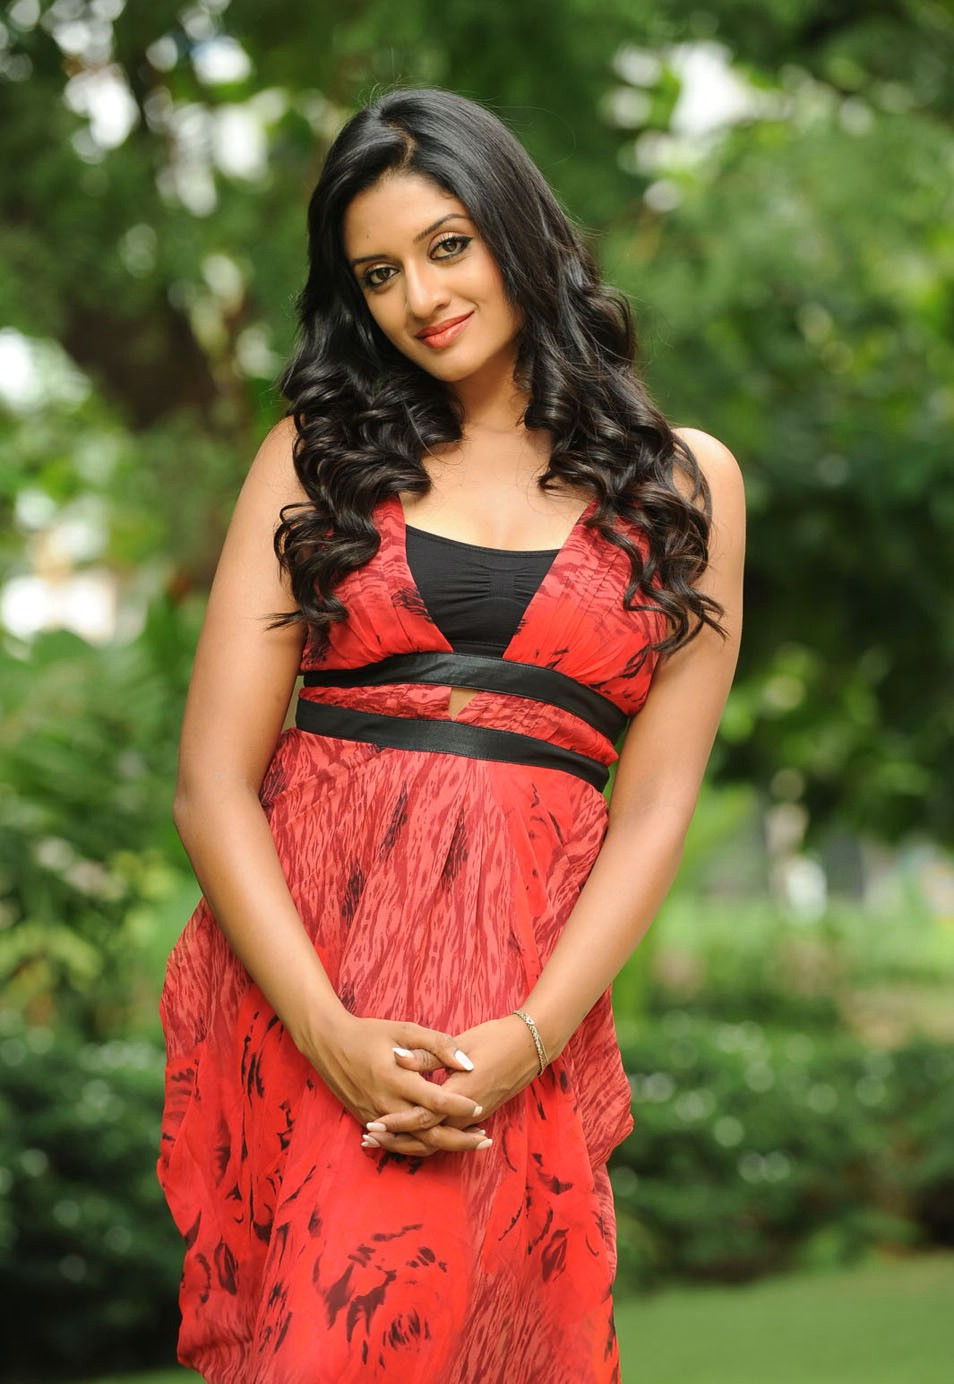 Gorgeous and rosy Vimala raman  in red dress latest spicy images